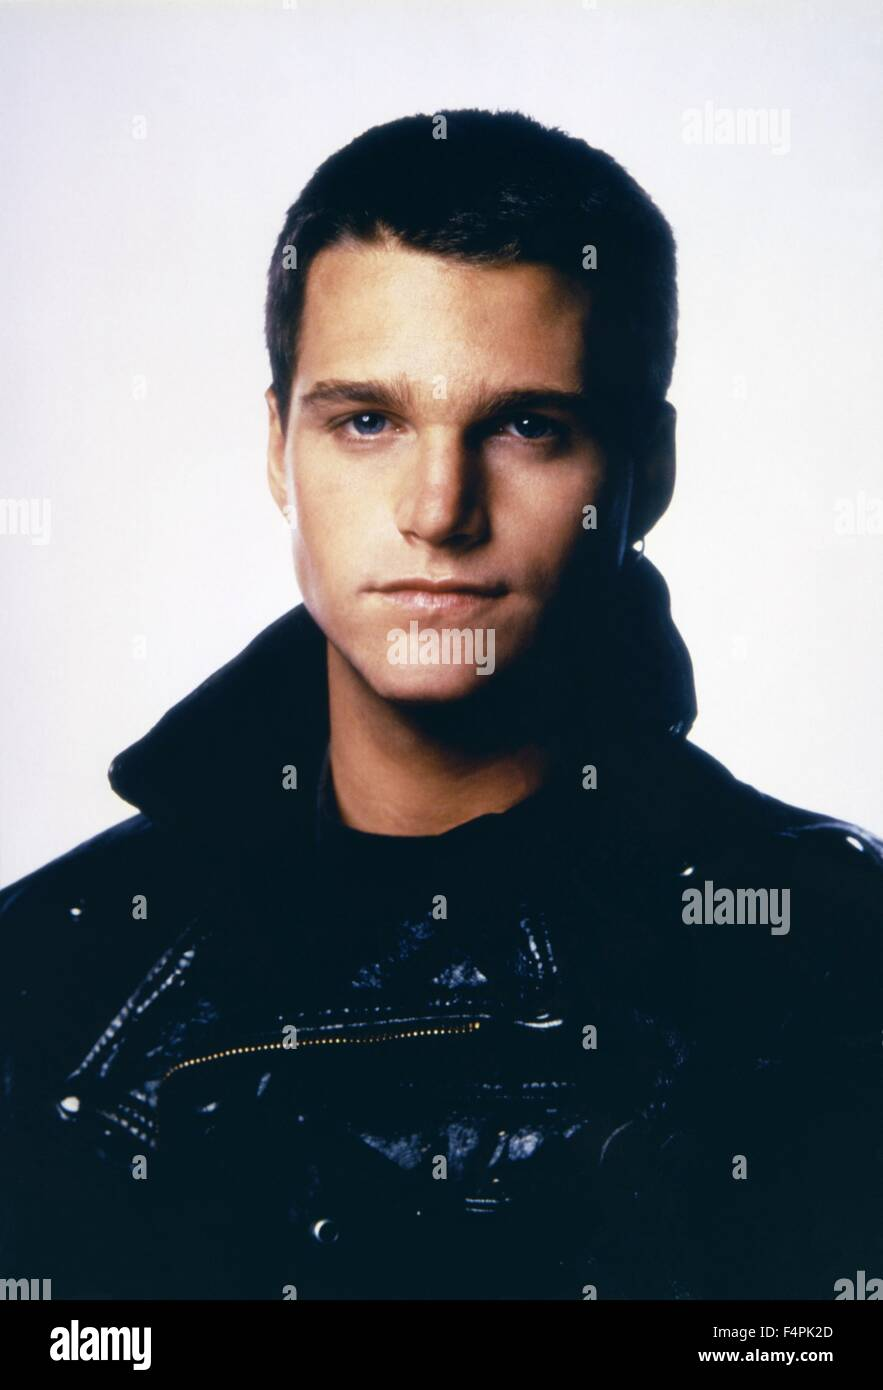 Chris O'Donnell / Batman Forever / 1995 directed by Joel Schumacher [Warner Bros. Pictures] - Stock Image